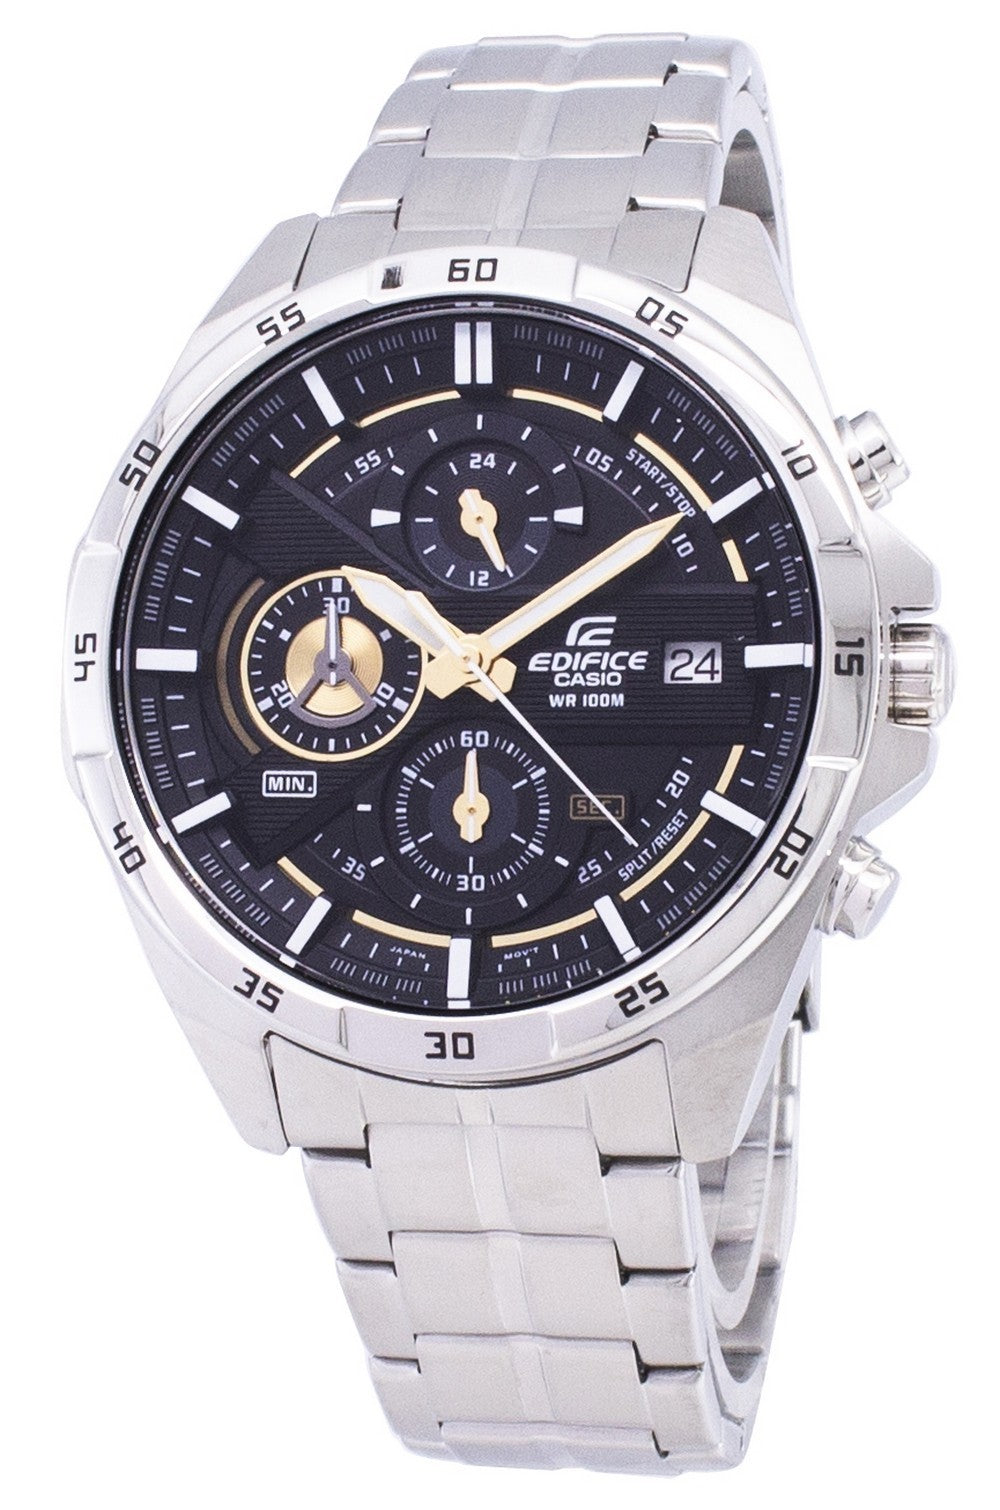 Casio Edifice Chronograph Quartz EFR-556D-1AV EFR556D-1AV Men's Watch